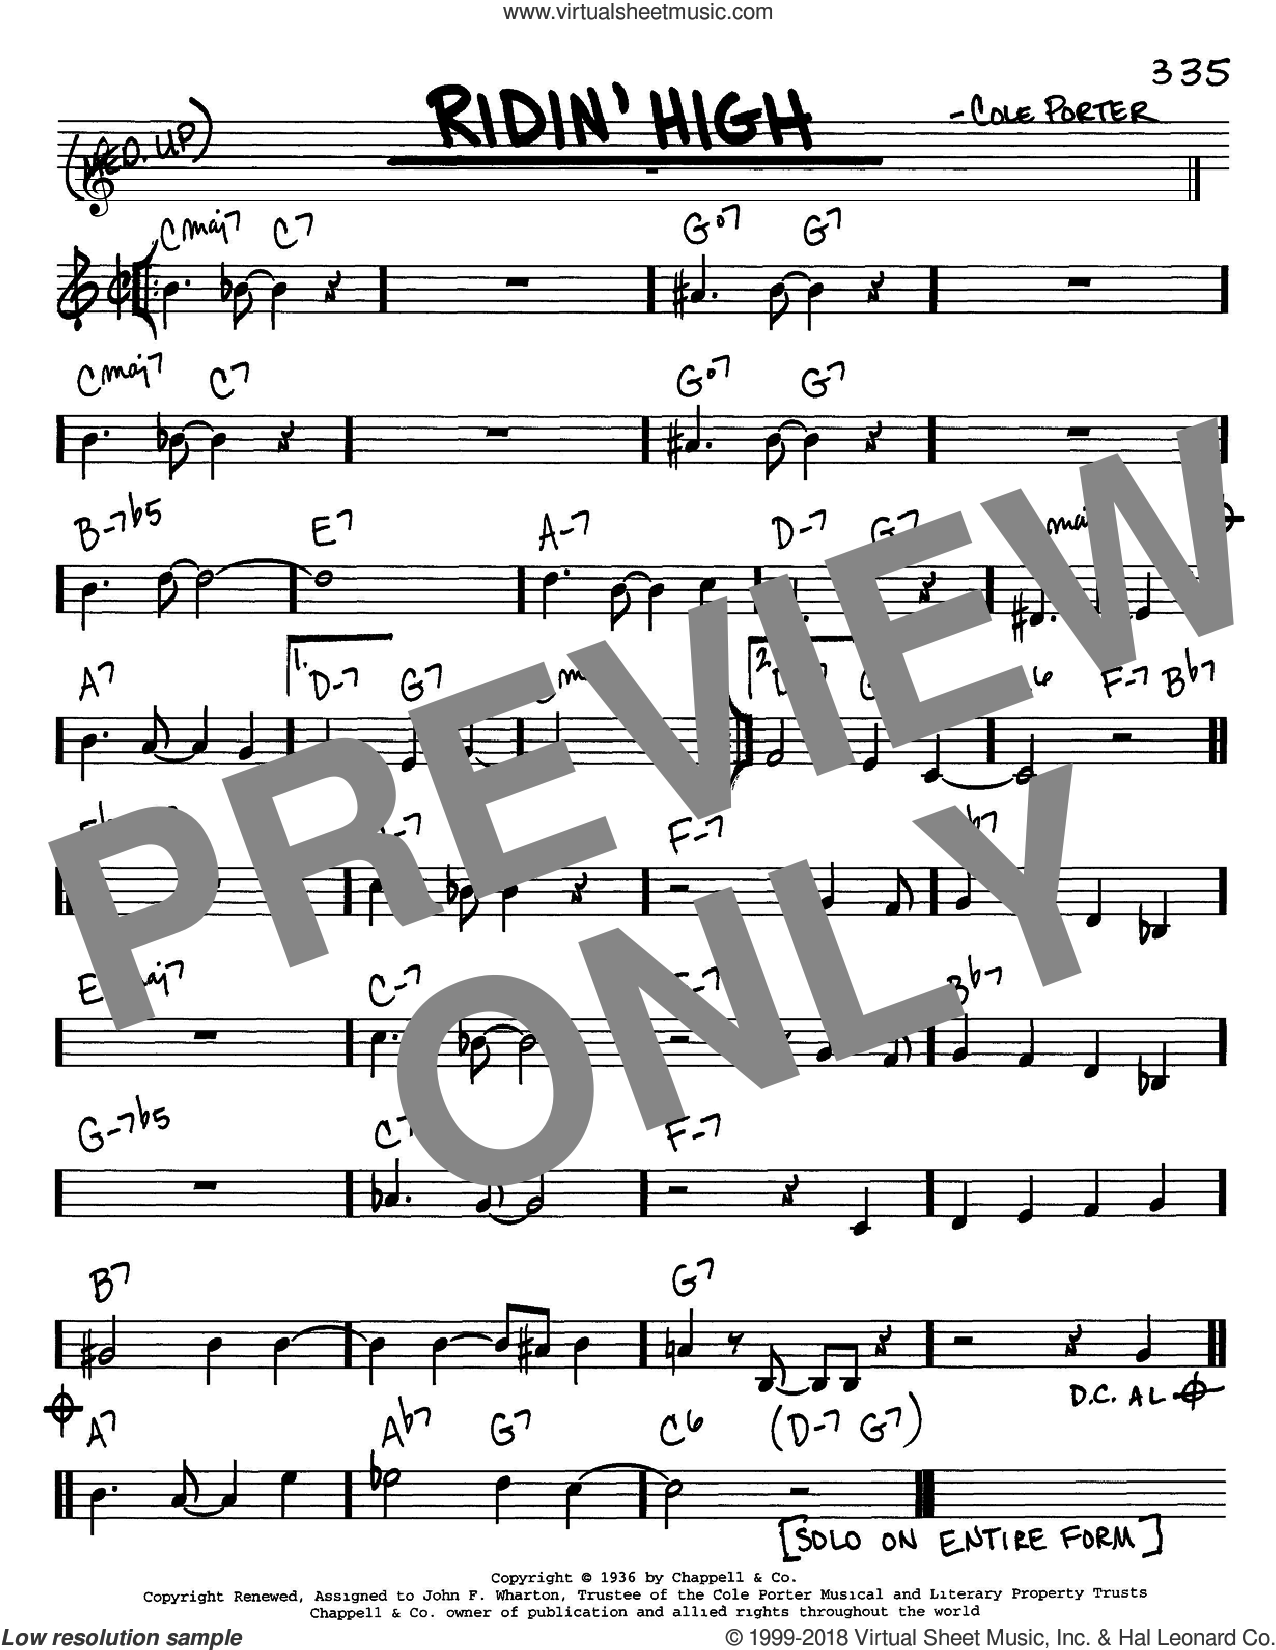 Ridin' High sheet music for voice and other instruments (C) by Cole Porter. Score Image Preview.